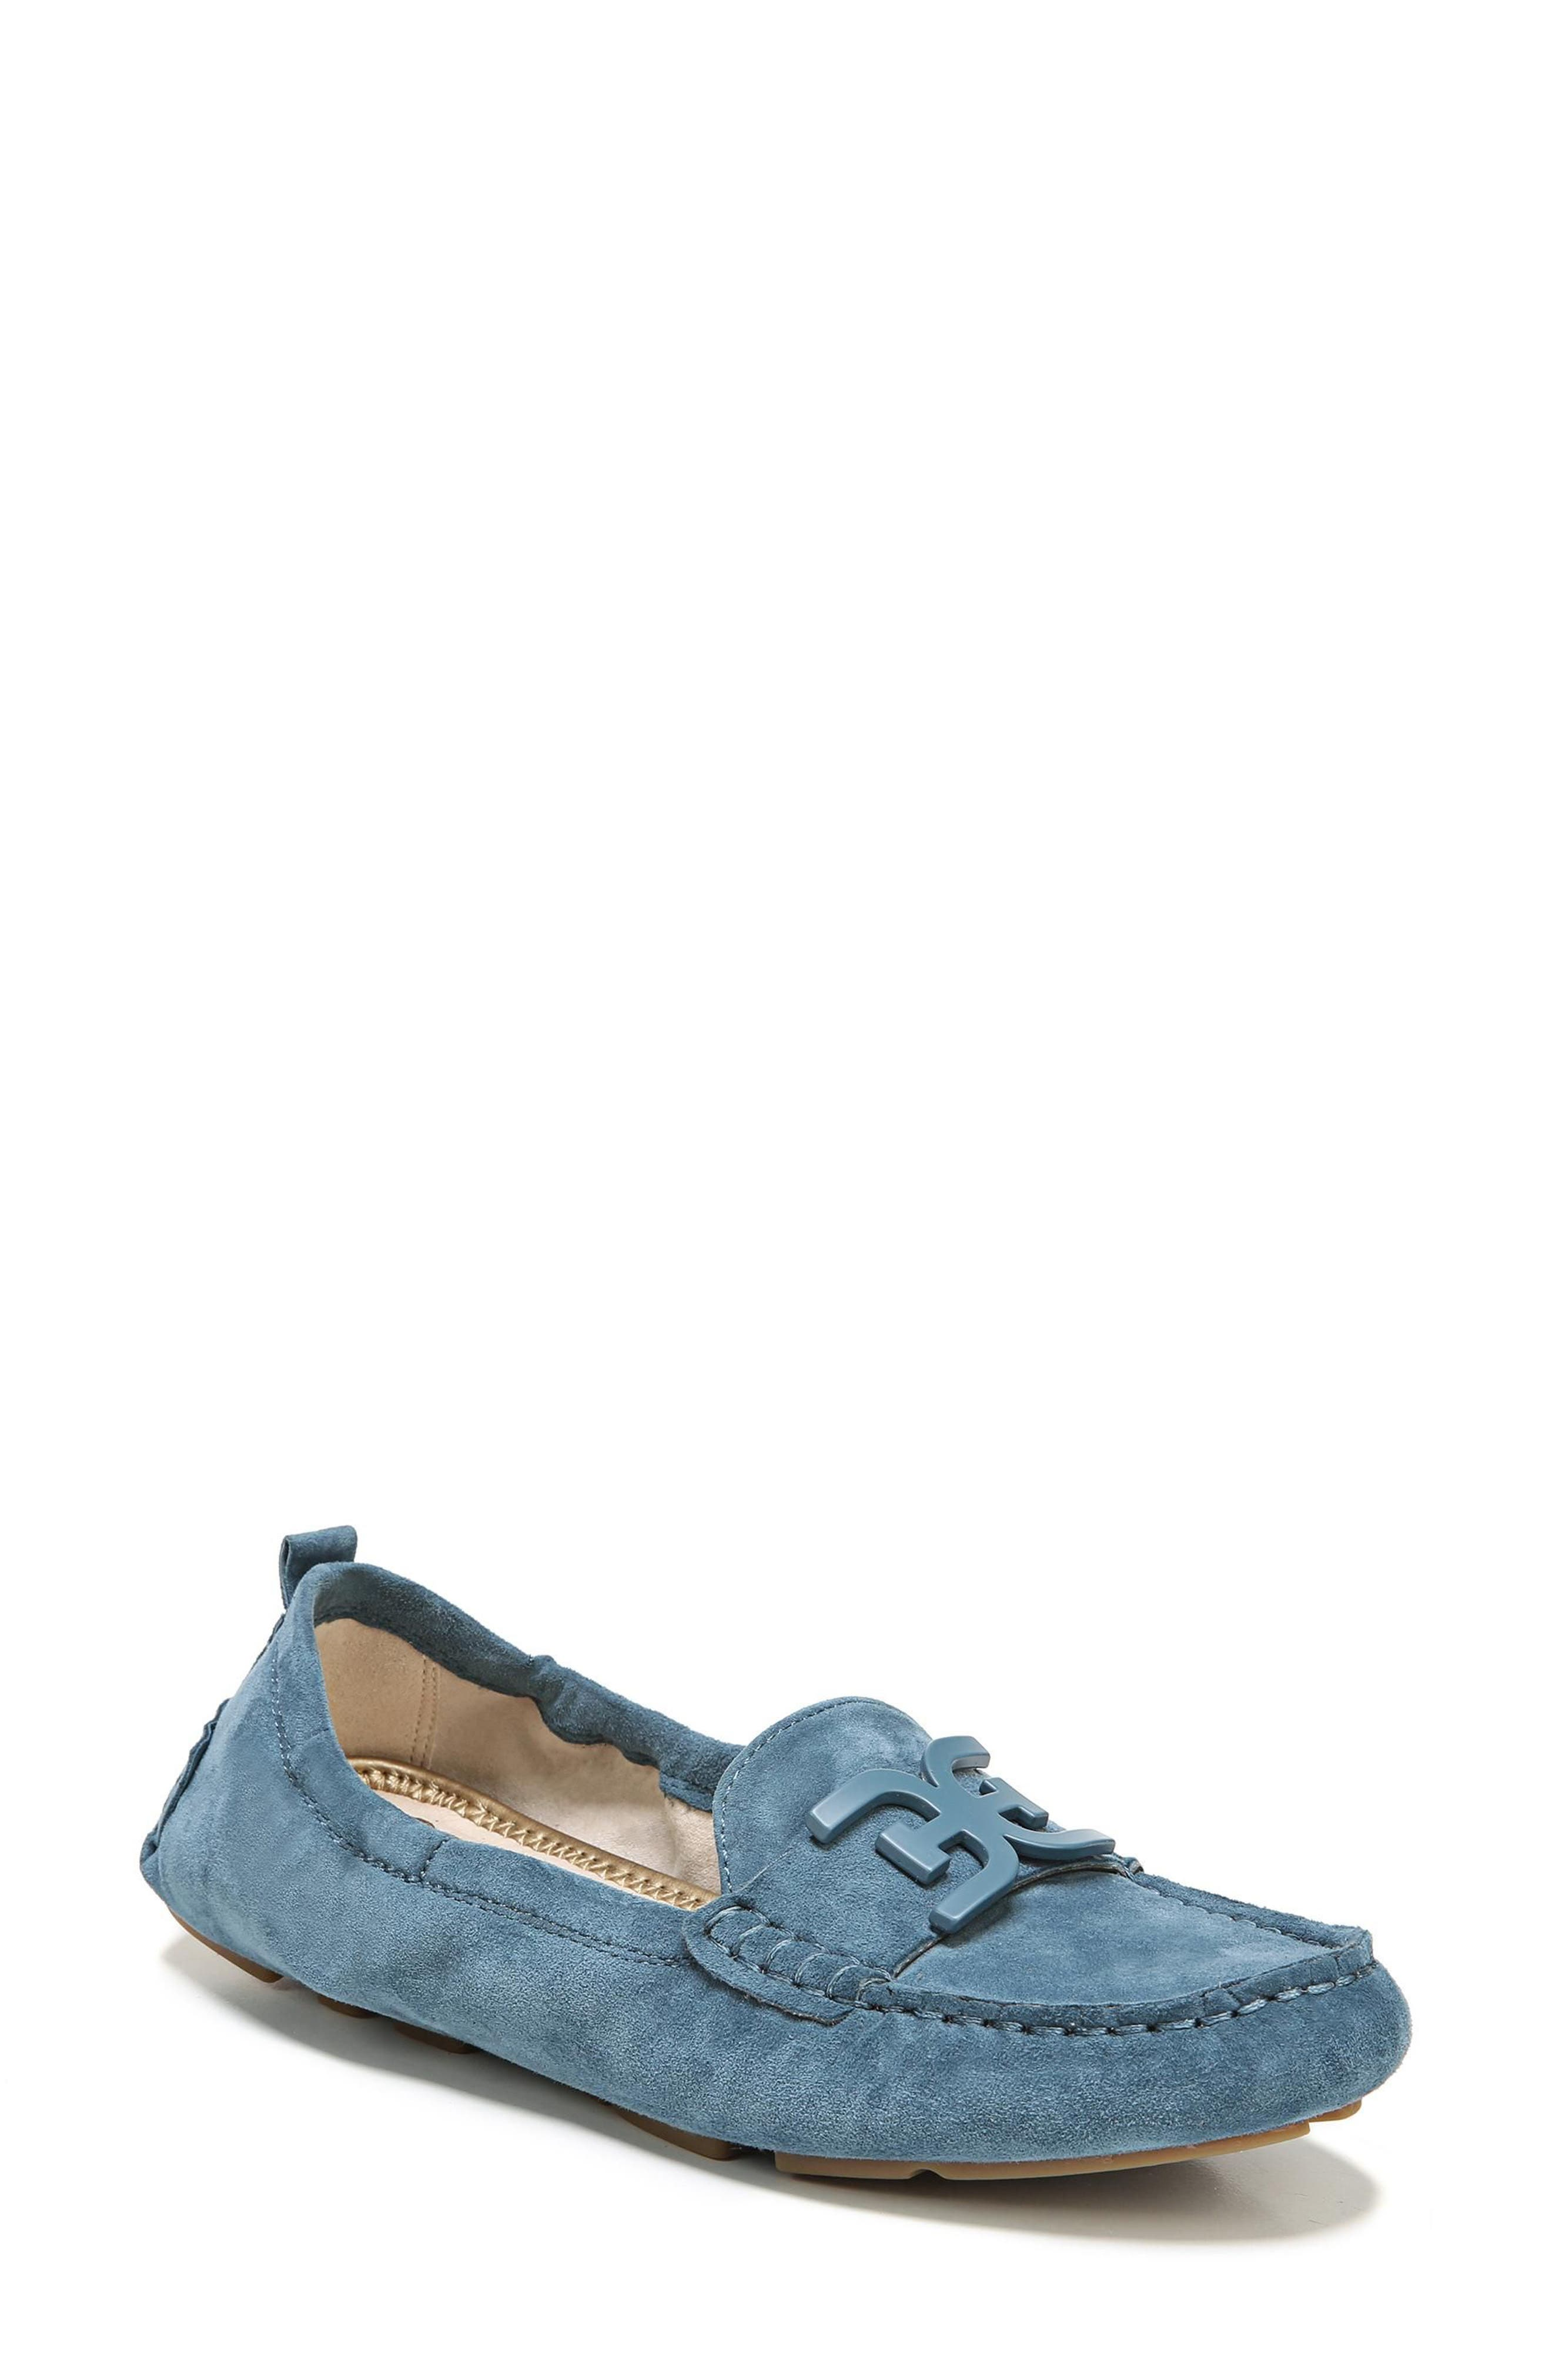 Farrell Moccasin Loafer,                             Main thumbnail 1, color,                             Denim Blue Suede